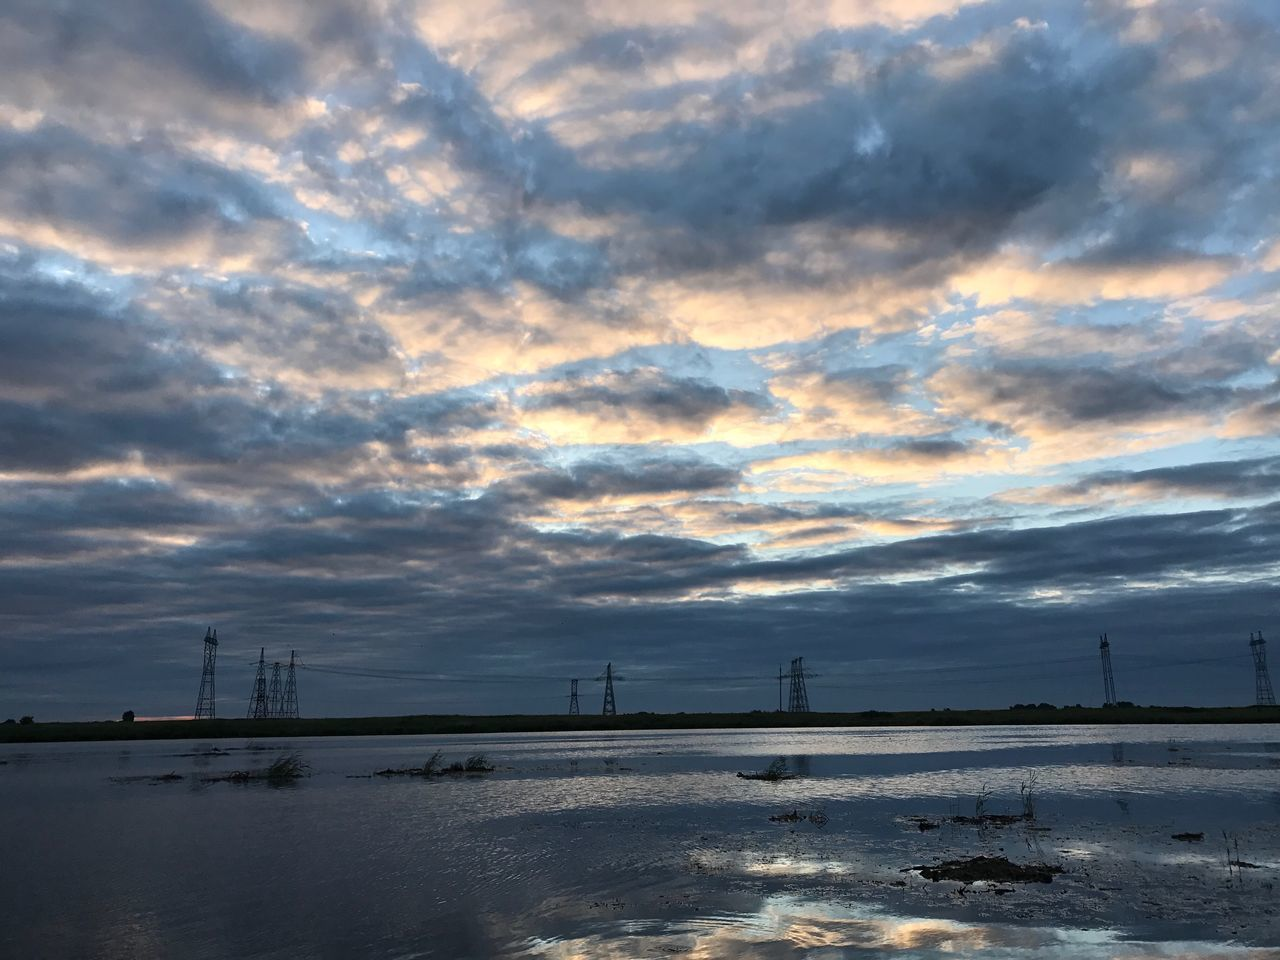 cloud - sky, sky, no people, water, outdoors, sunset, nature, cold temperature, electricity pylon, day, beauty in nature